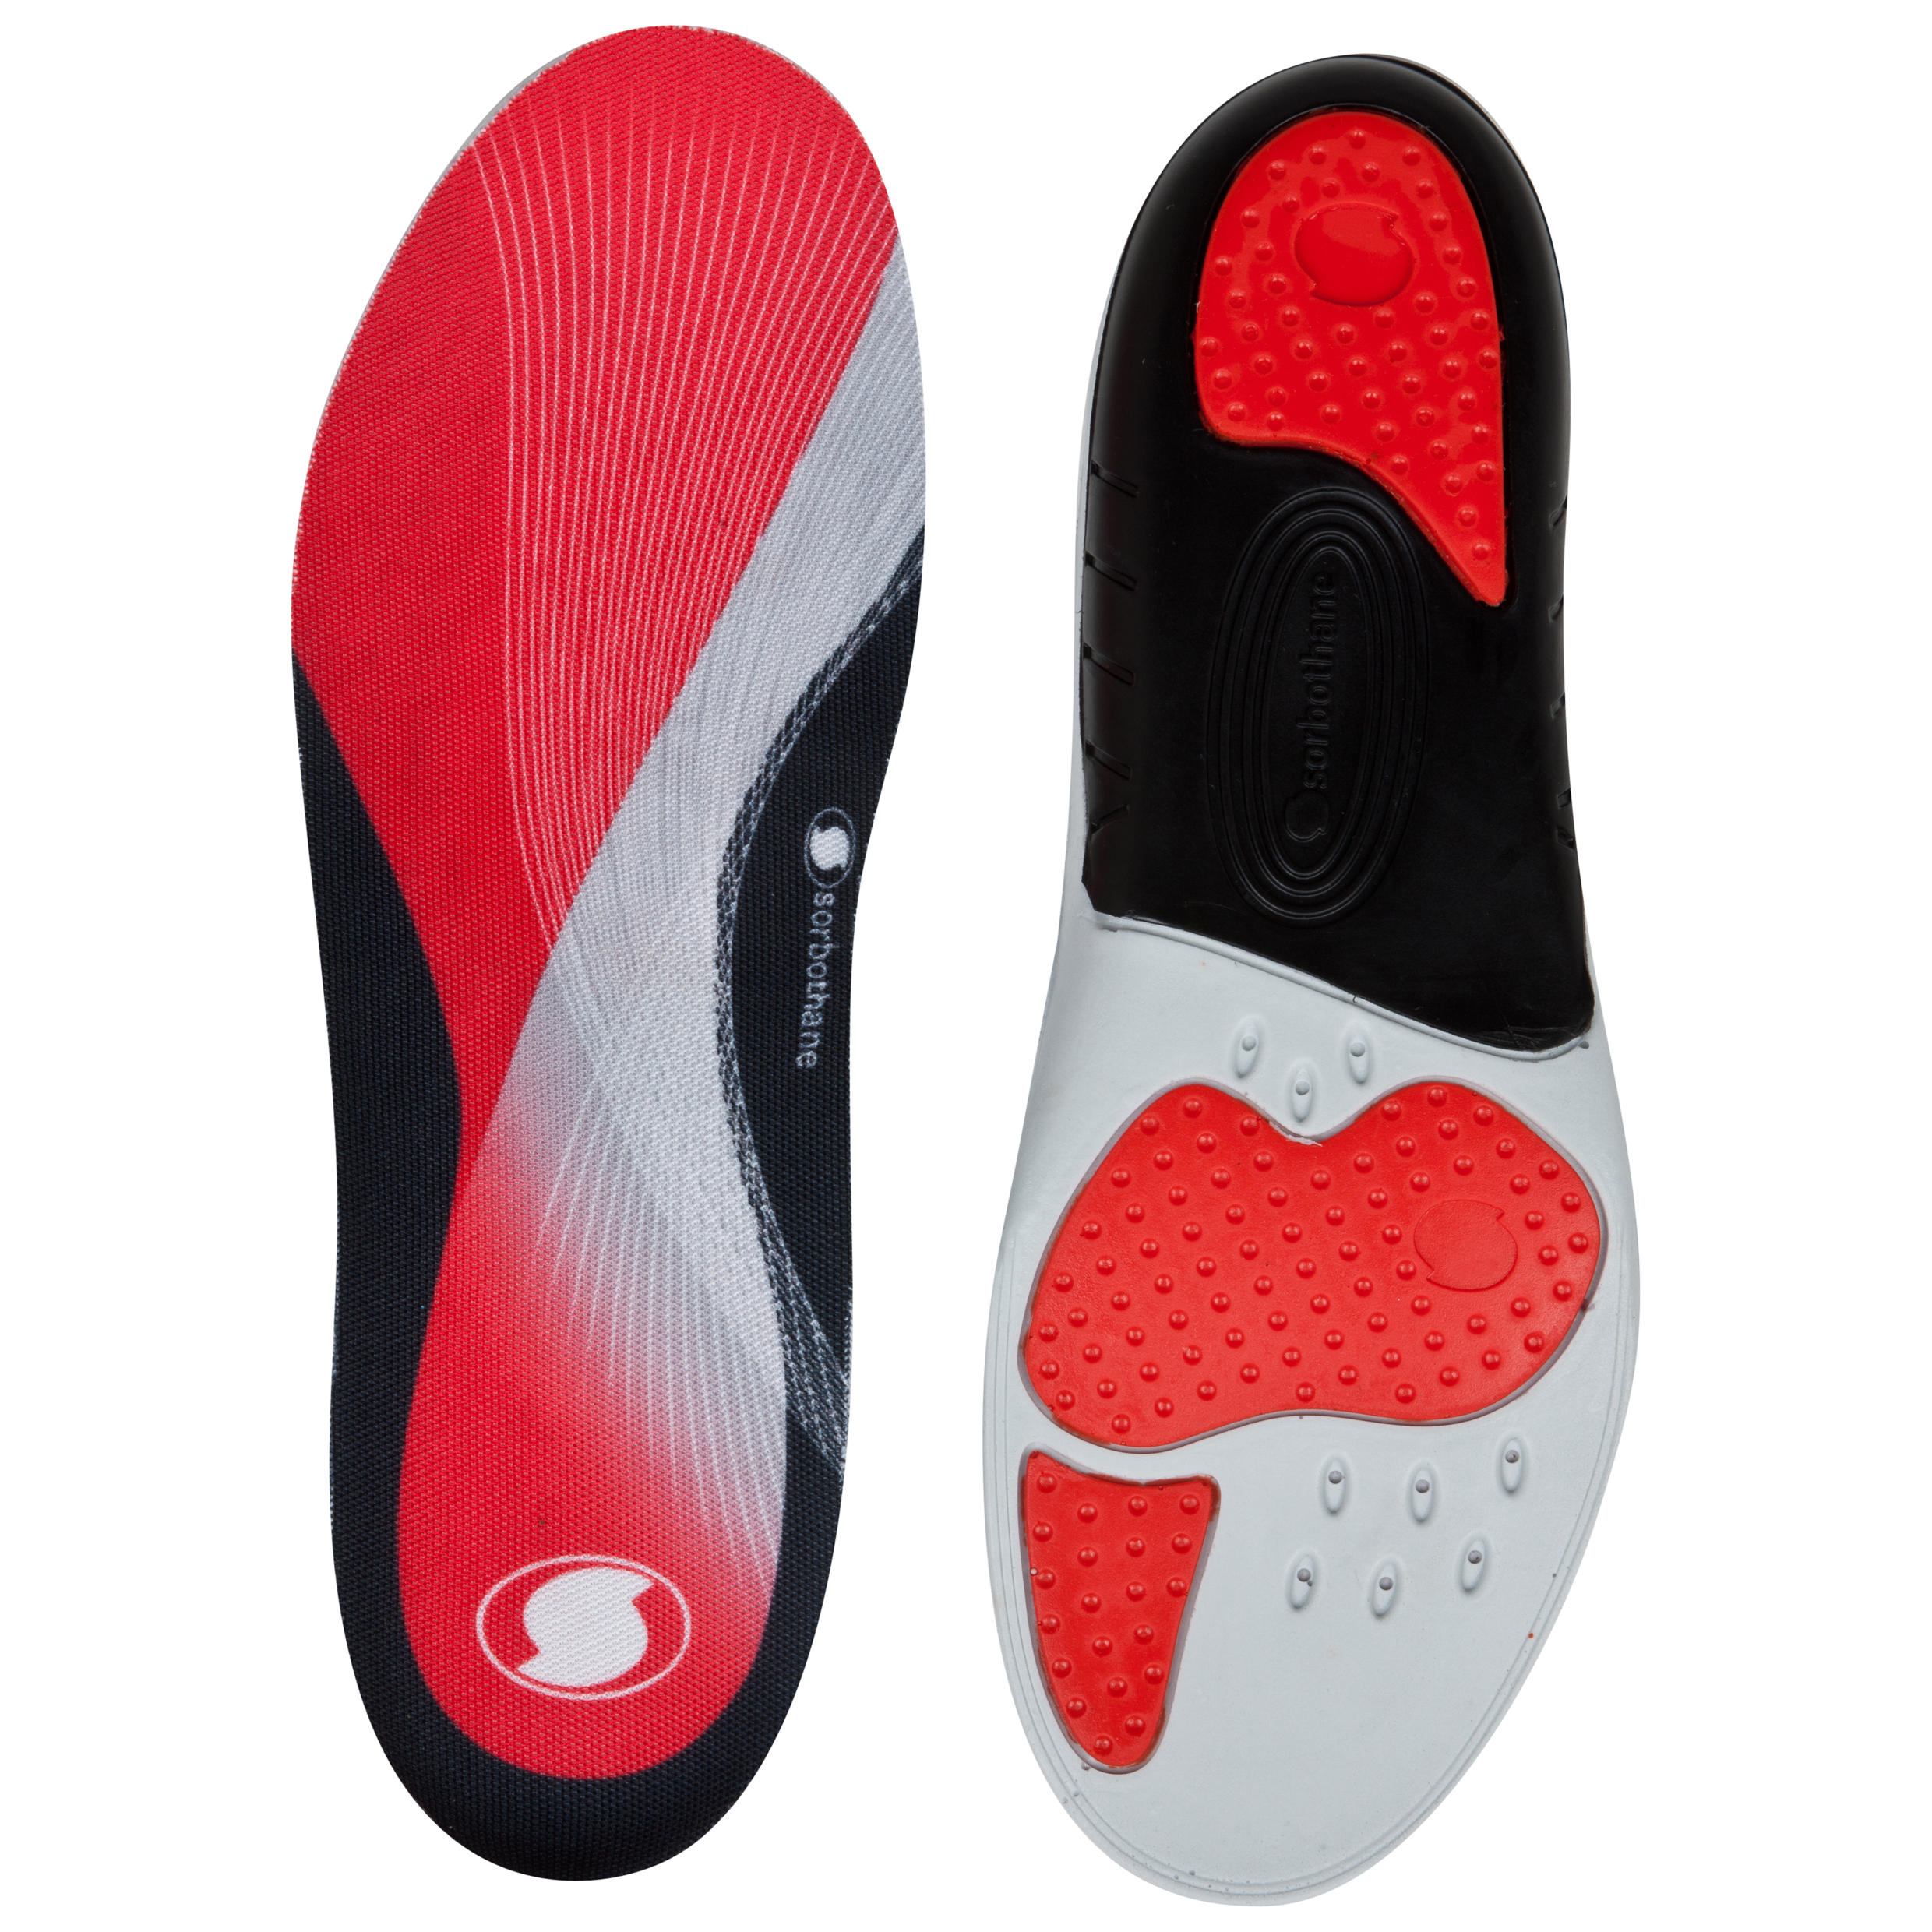 Warrior Sorbothane Sorbo Pro Insoles